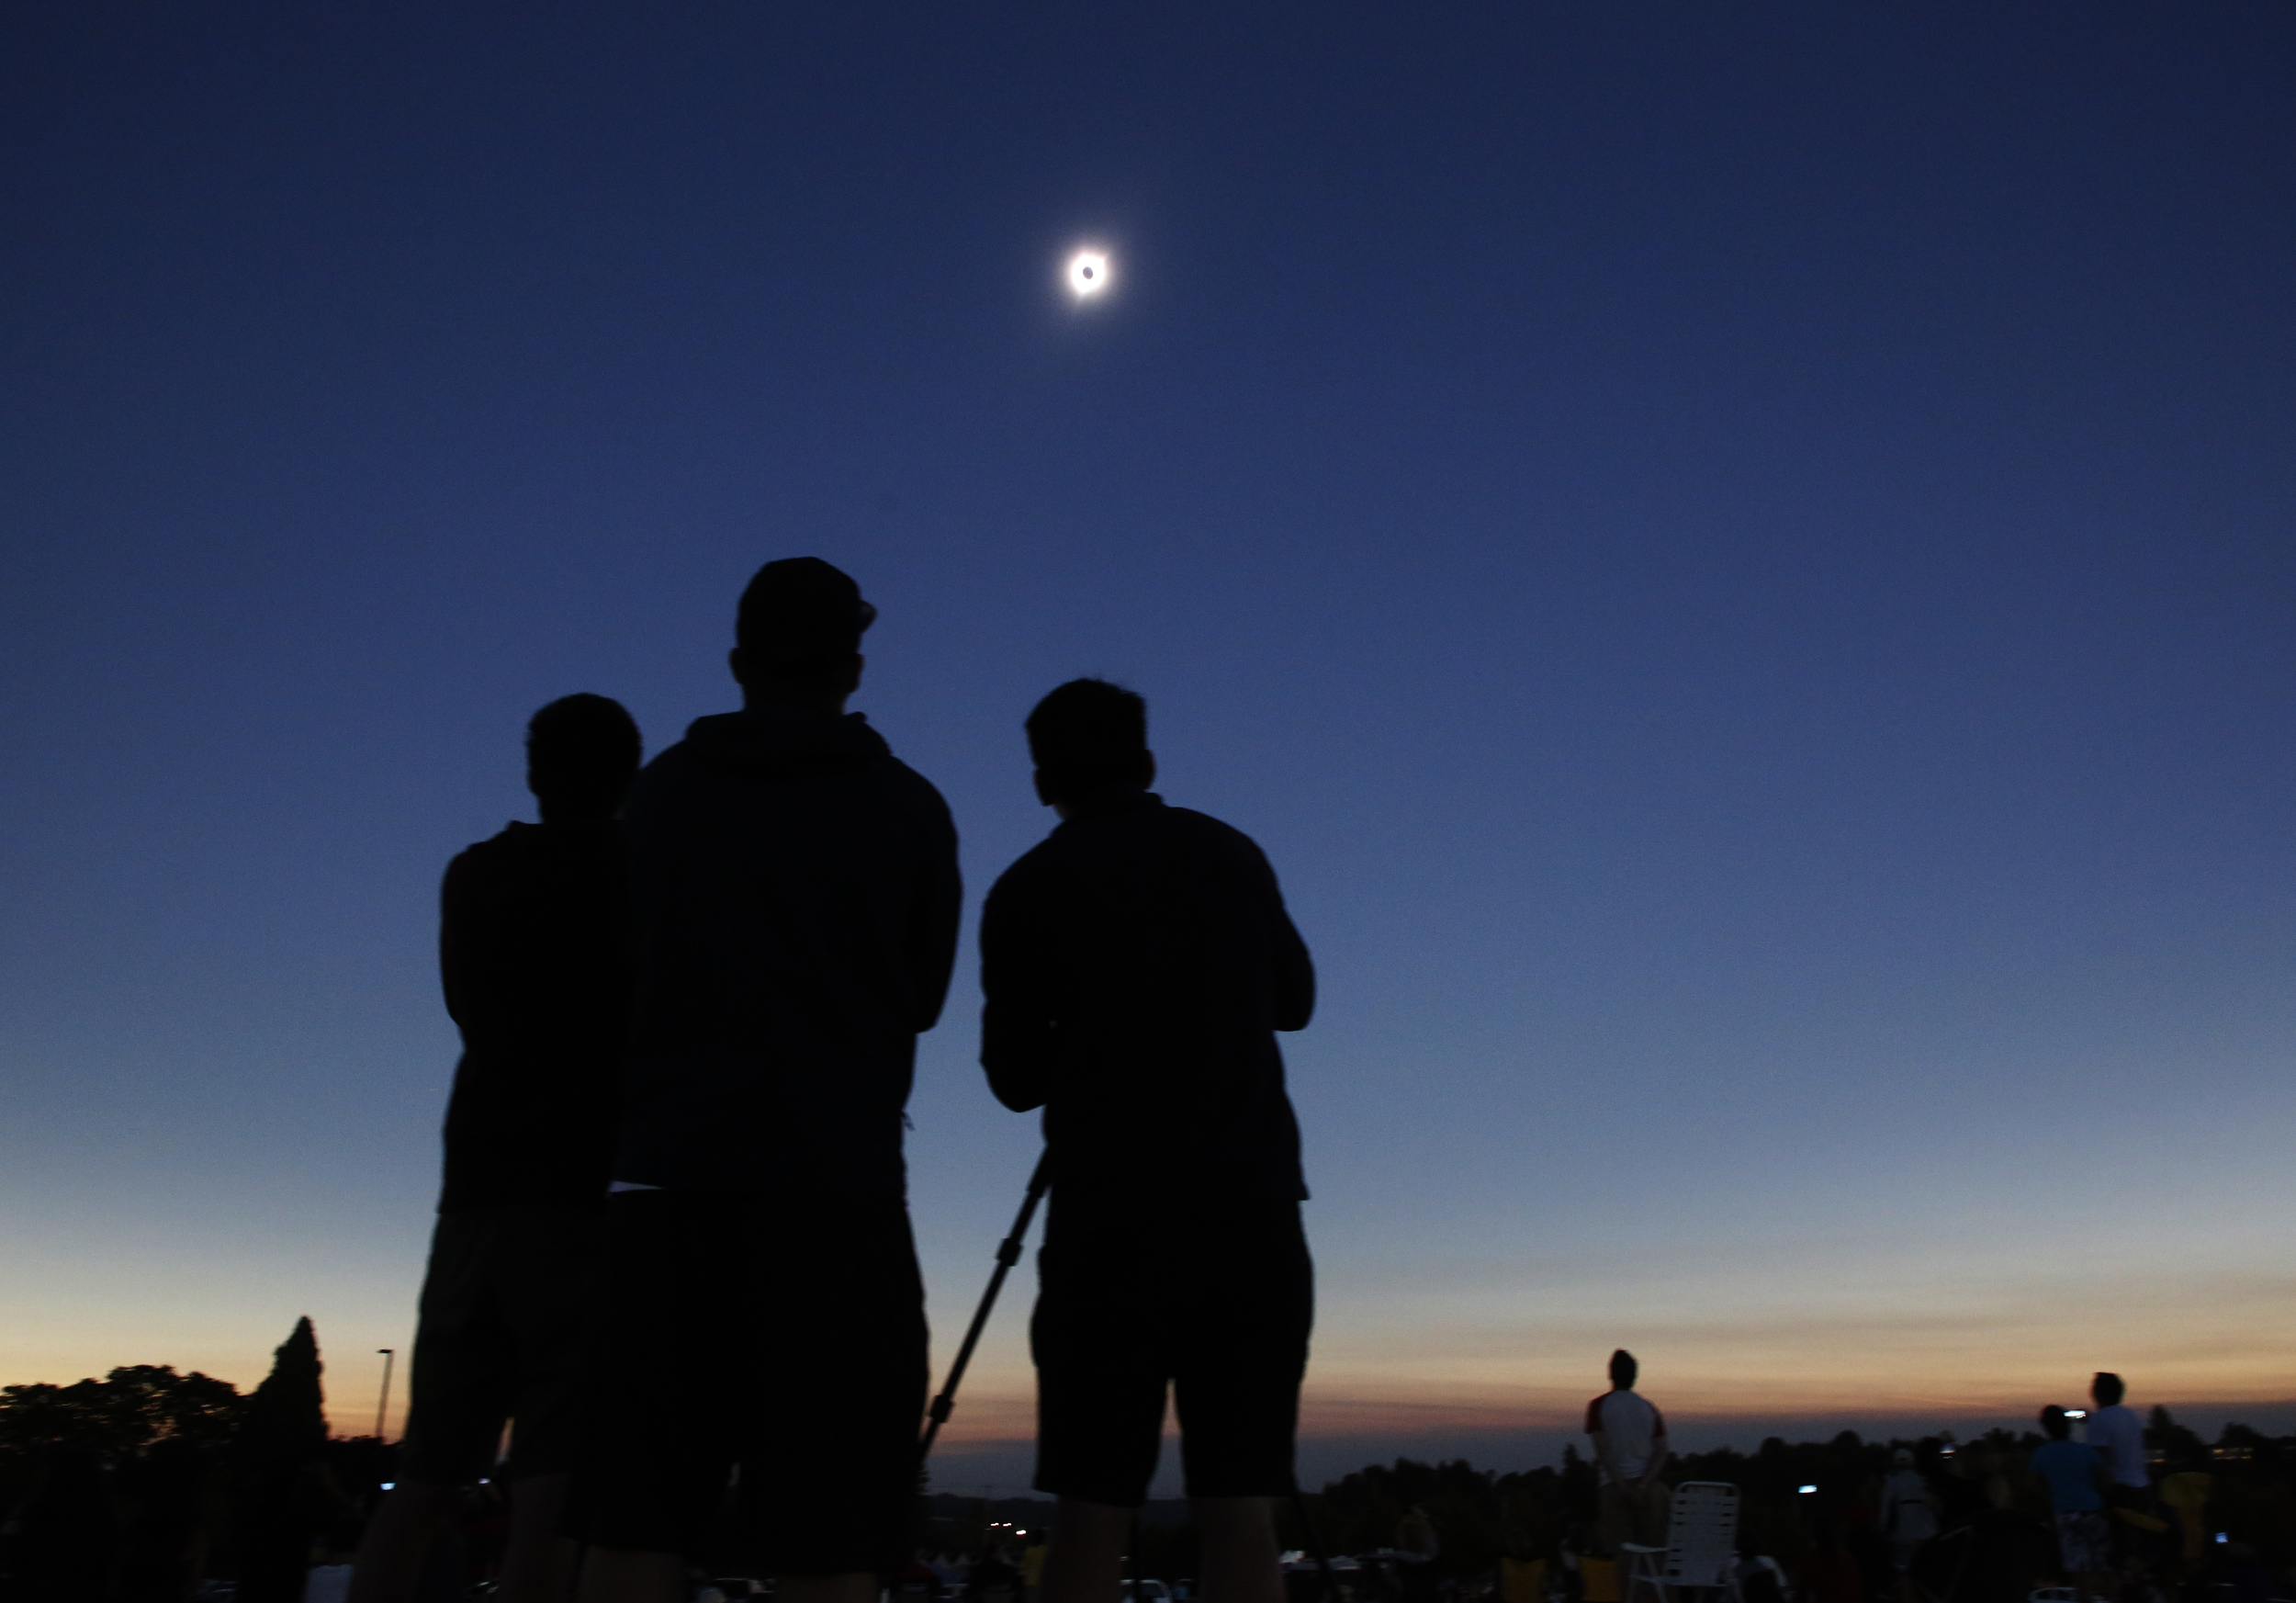 UC Riverside to host eclipse viewing event